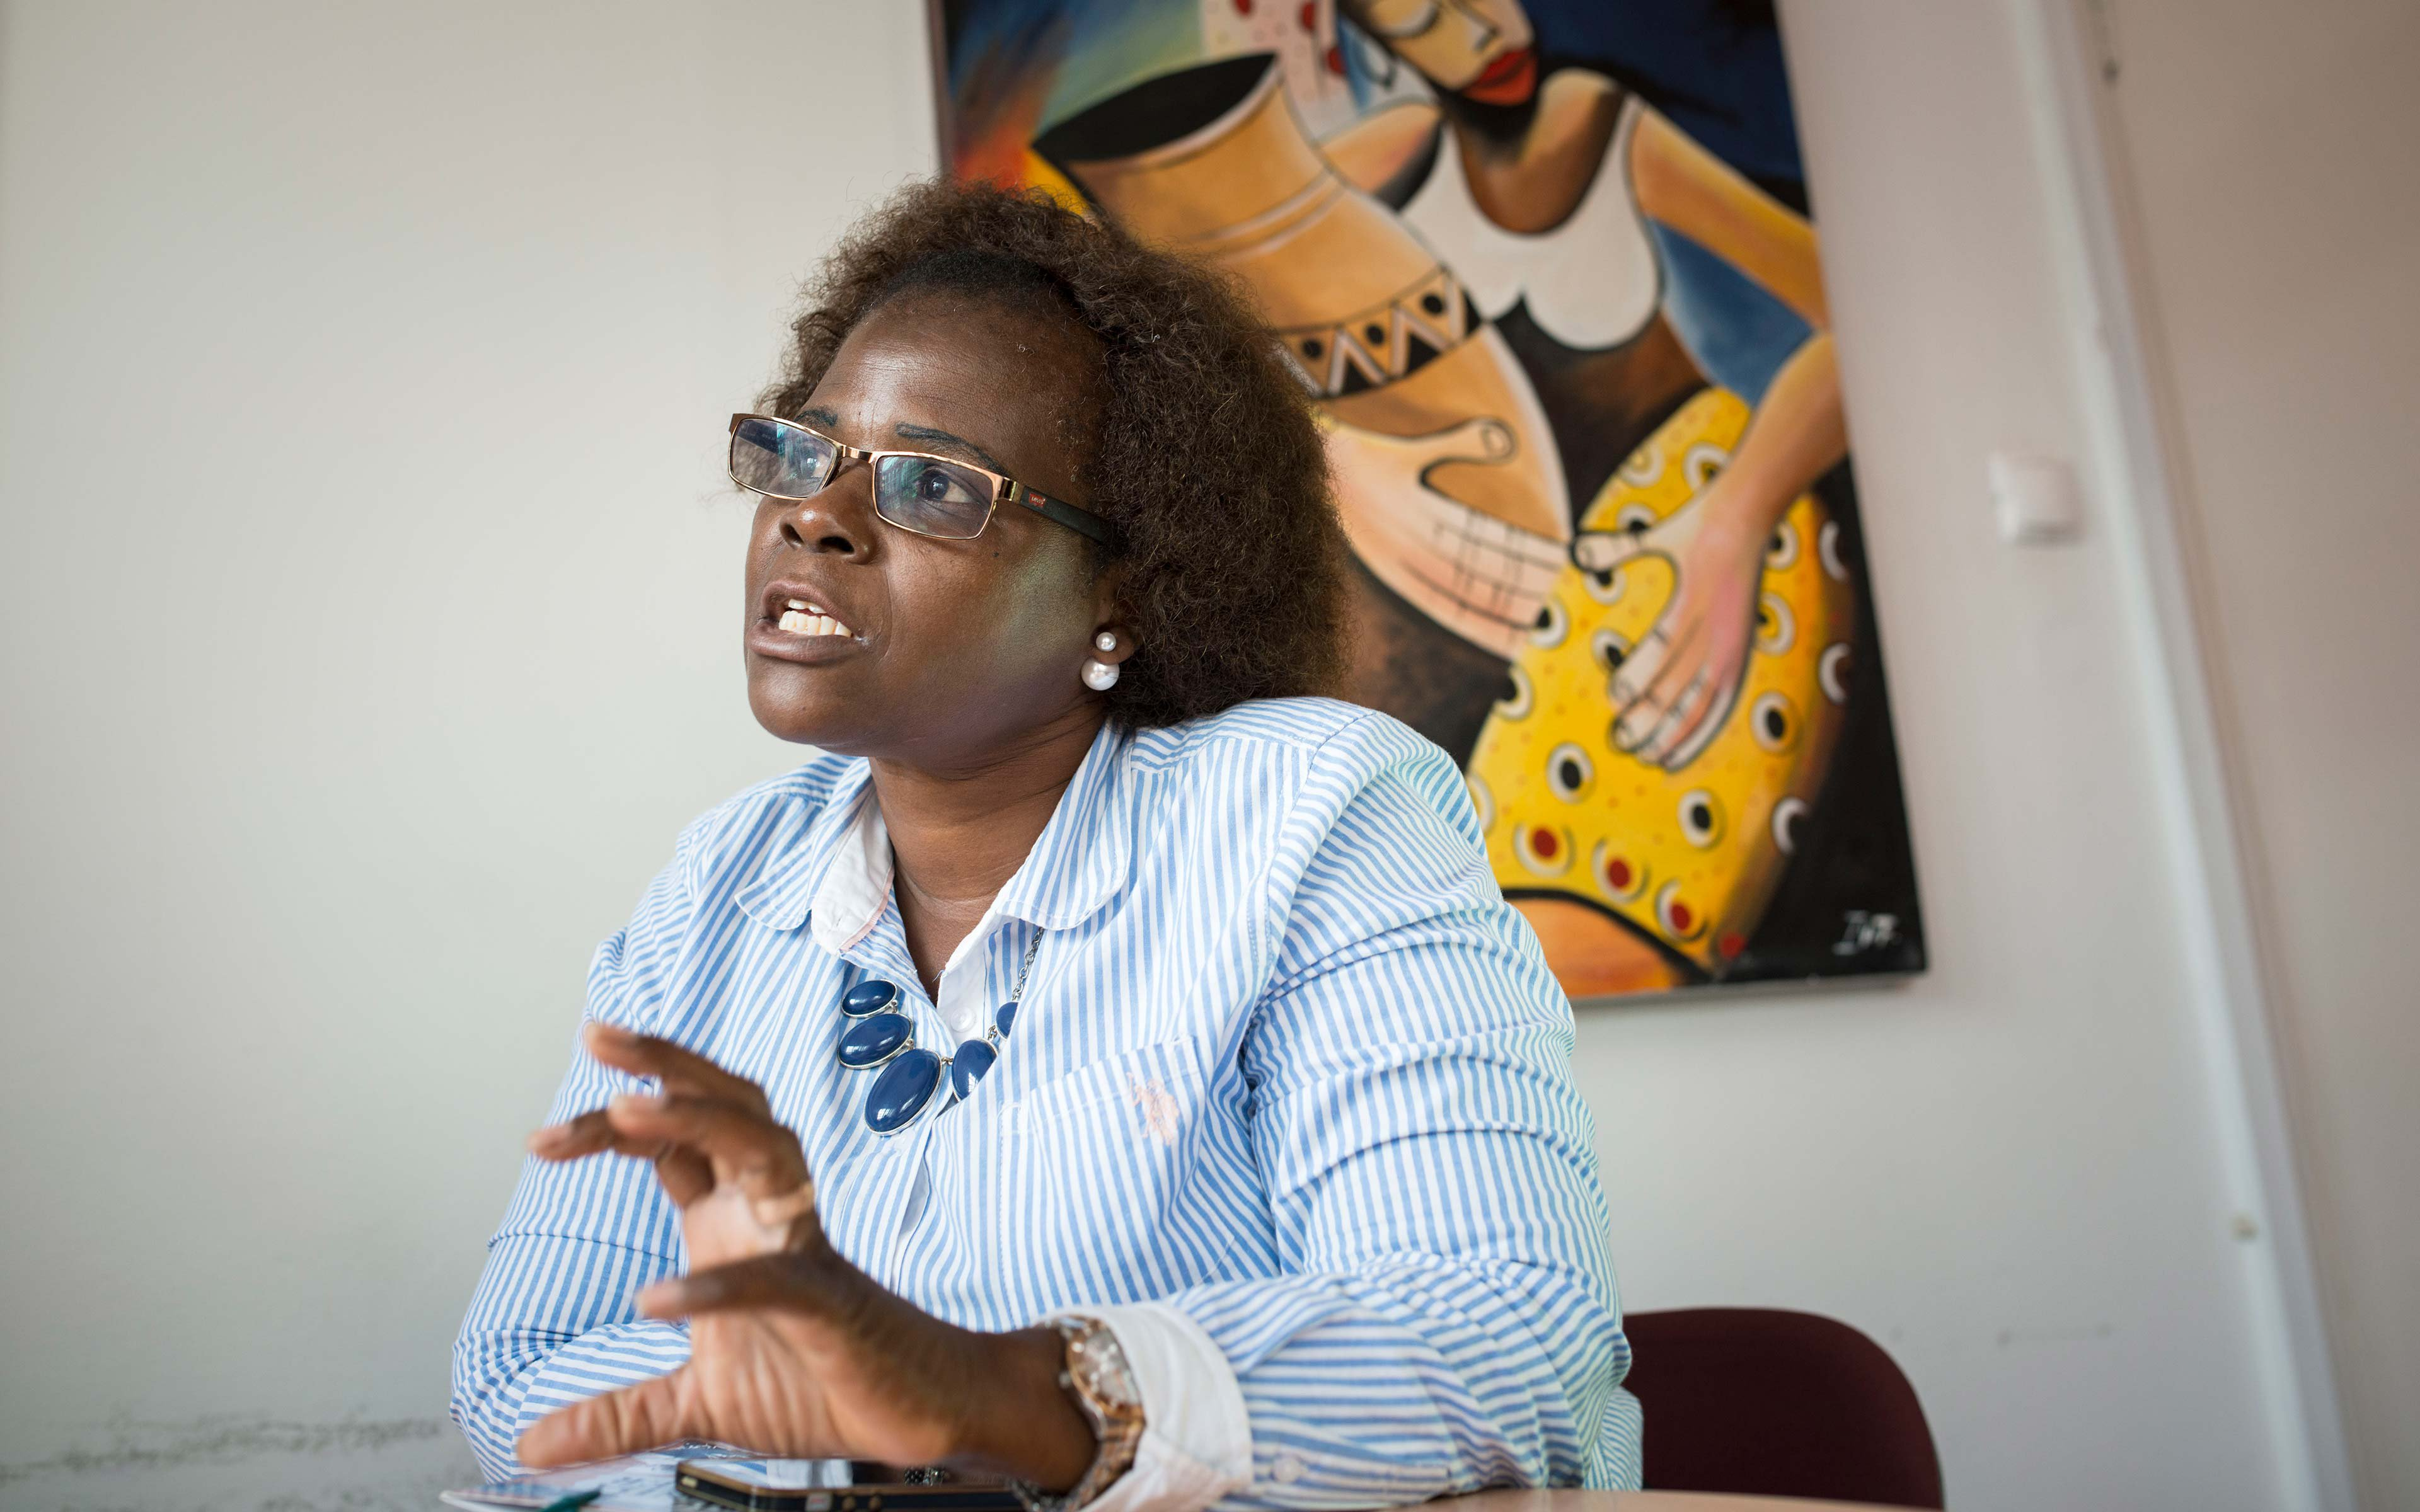 Oxfam partner Graҫa Julio works at Forum Mulher in Maputo and has been involved in the campaign to promote and defend the rights of women in Mozambique for more than 20 years.